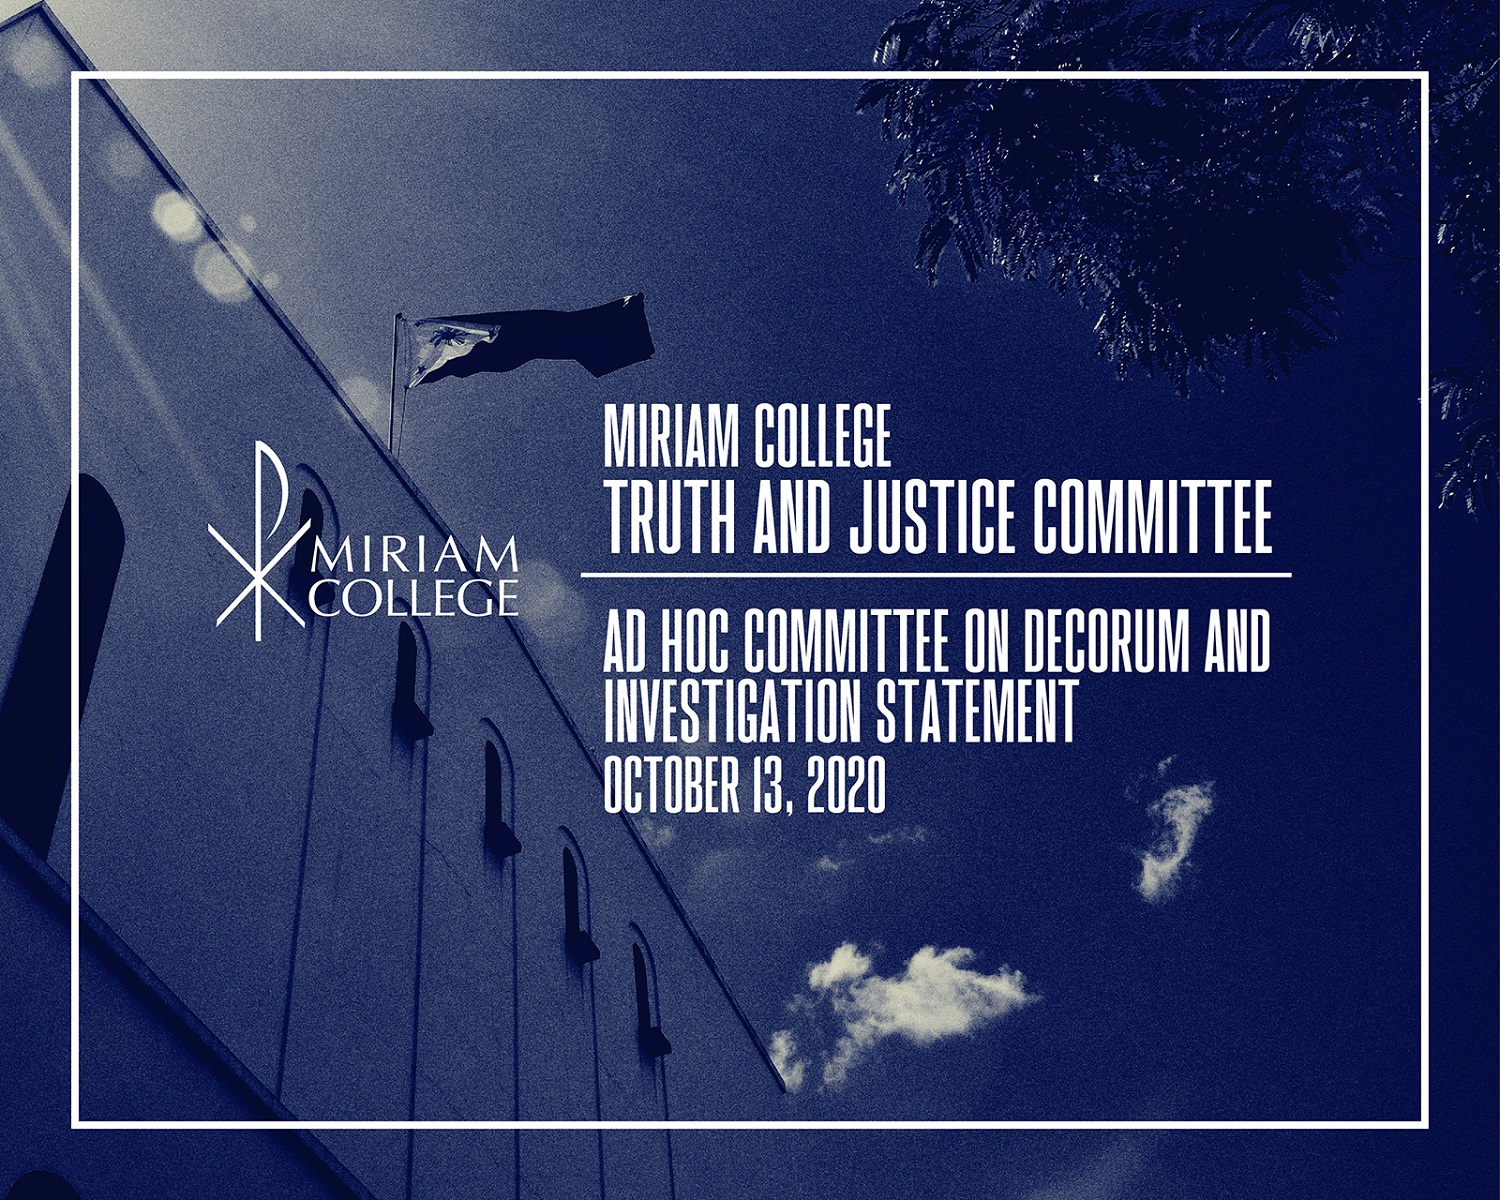 MIRIAM COLLEGE  TRUTH AND JUSTICE COMMITTEE /  AD HOC COMMITTEE ON DECORUM AND INVESTIGATION STATEMENT